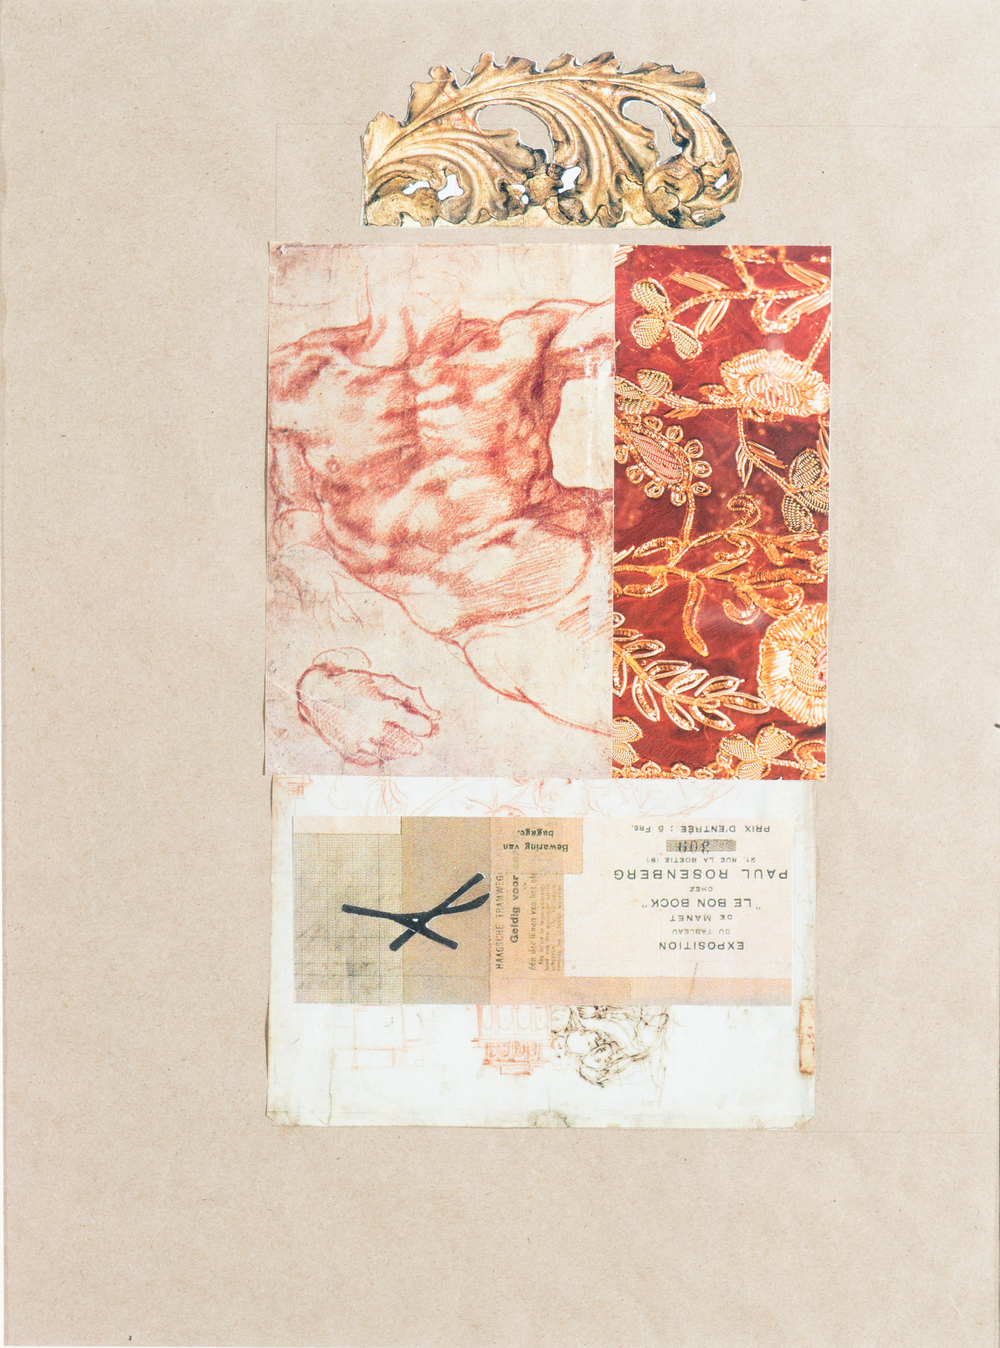 TL-048, Proximity (four letters about love), collage, 19 x 23, $575